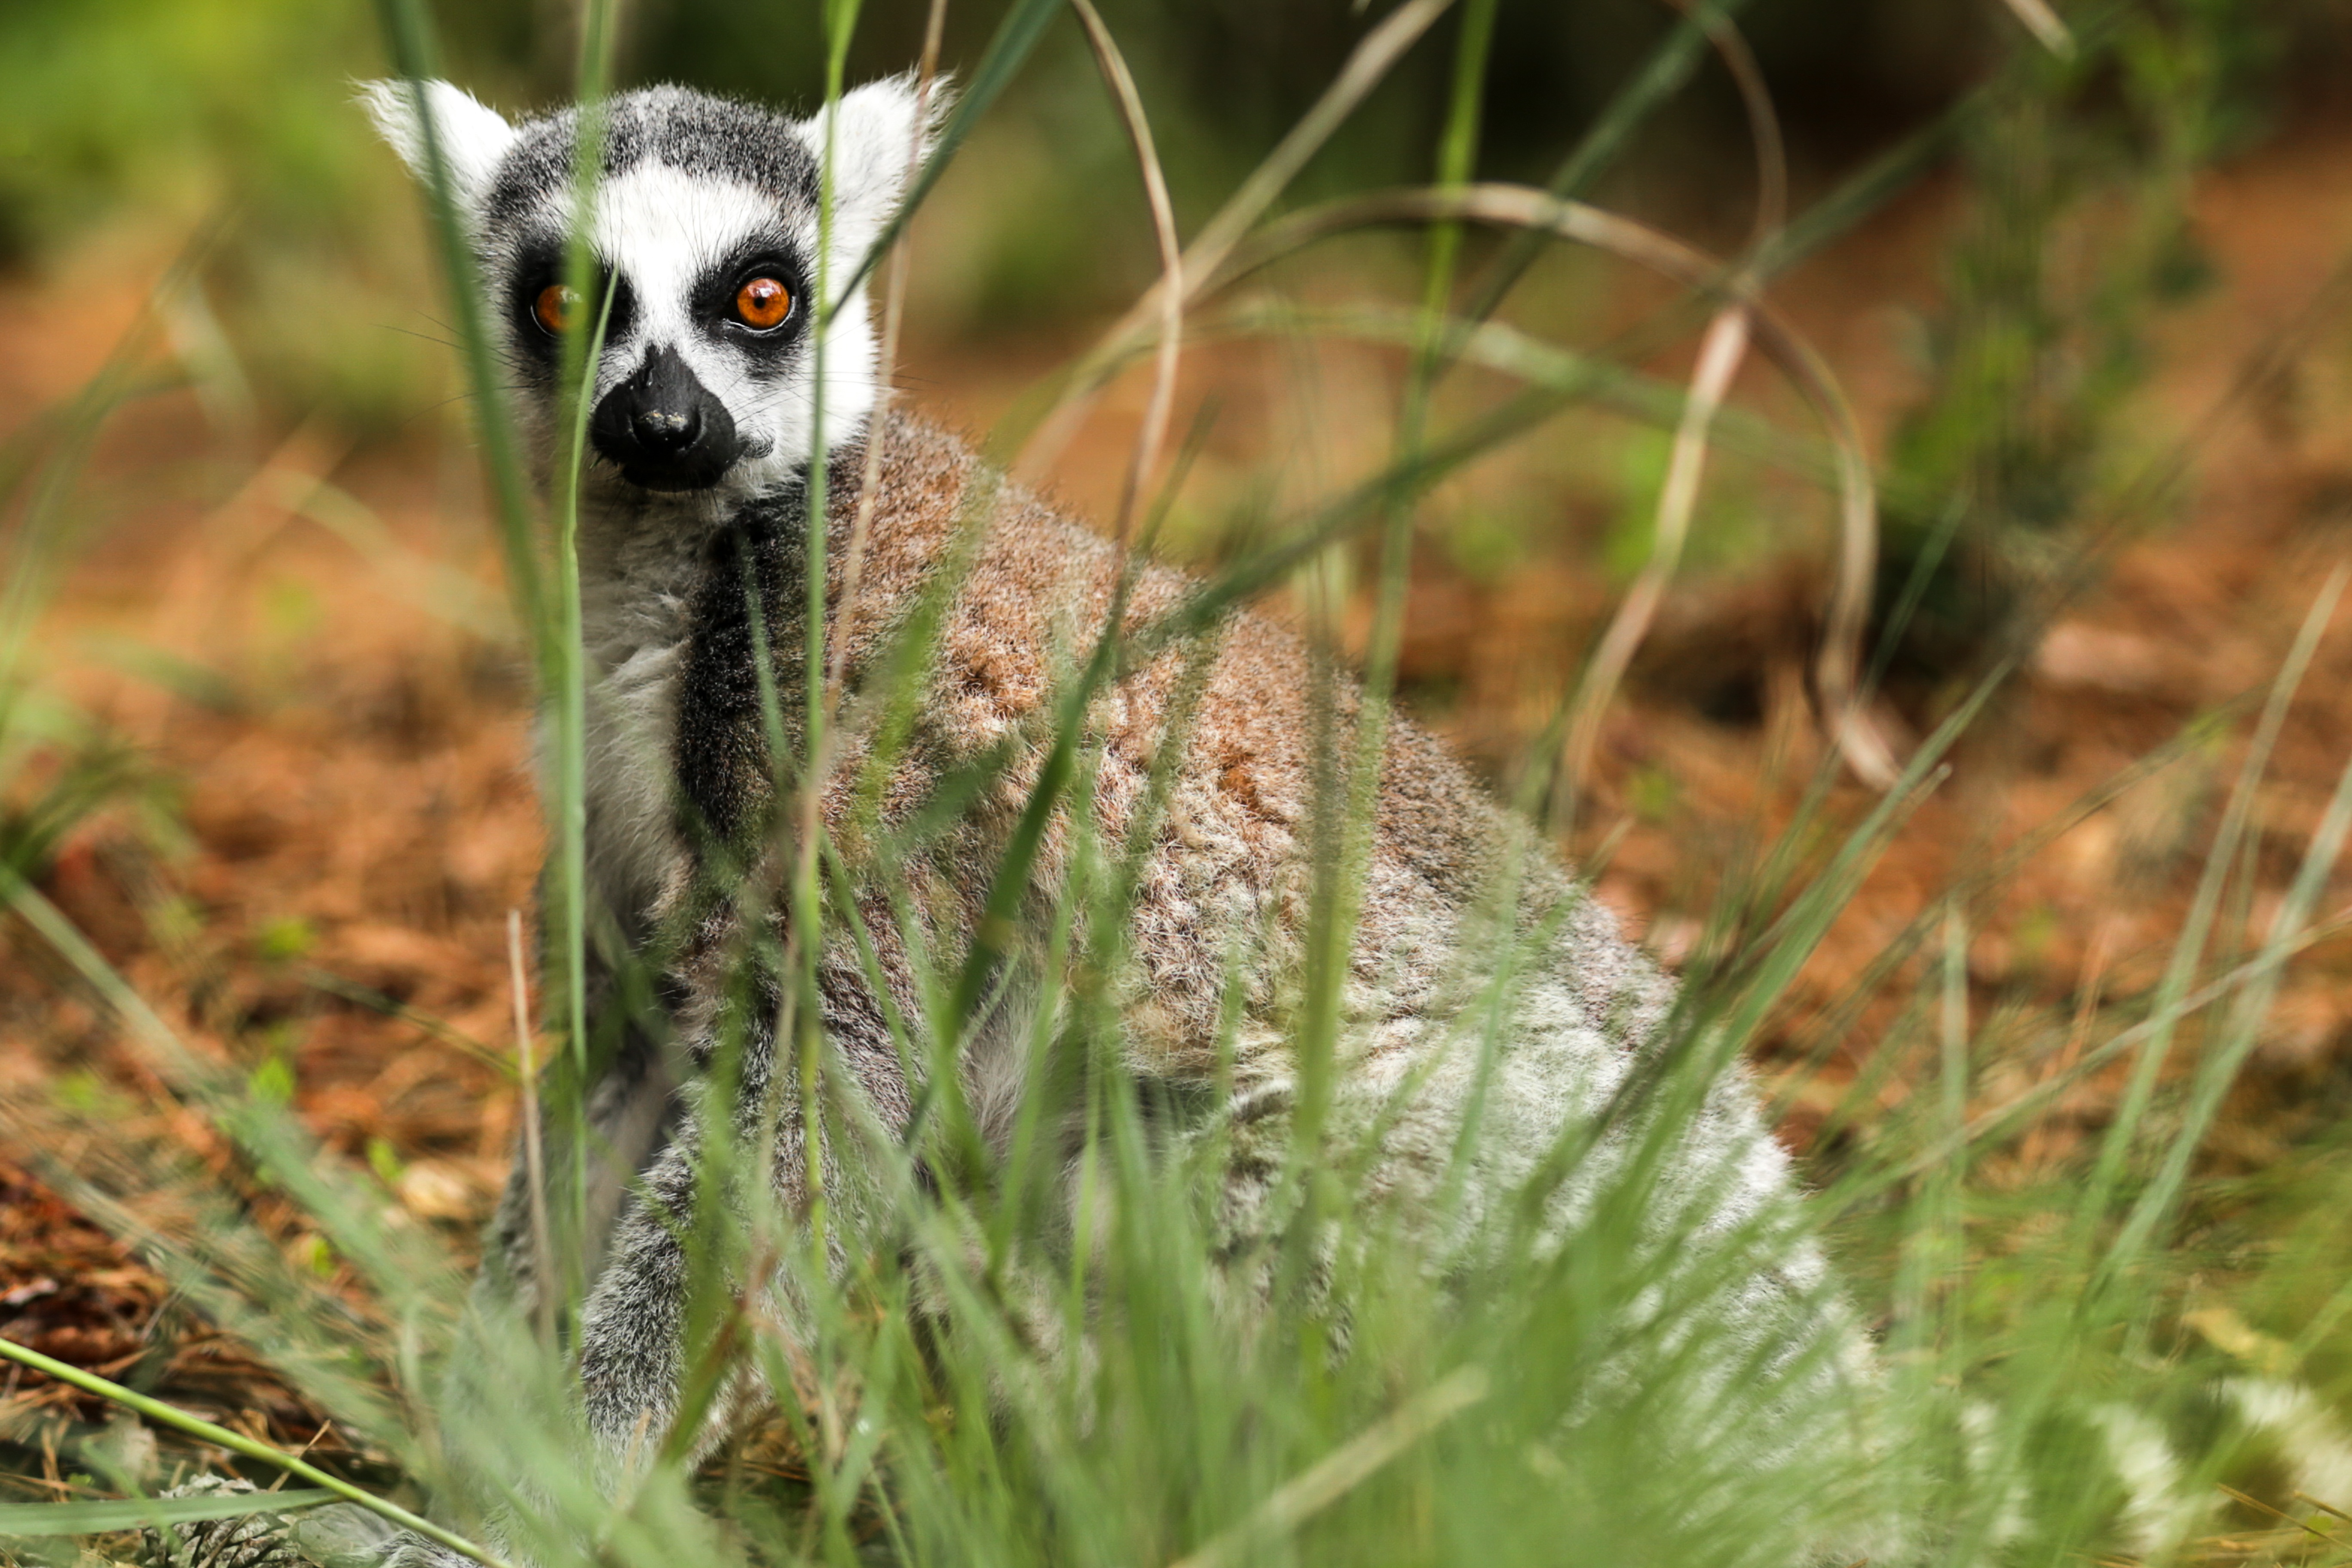 107826 download wallpaper Animals, Lemur, Is Sitting, Sits, Surprise, Astonishment, Grass screensavers and pictures for free